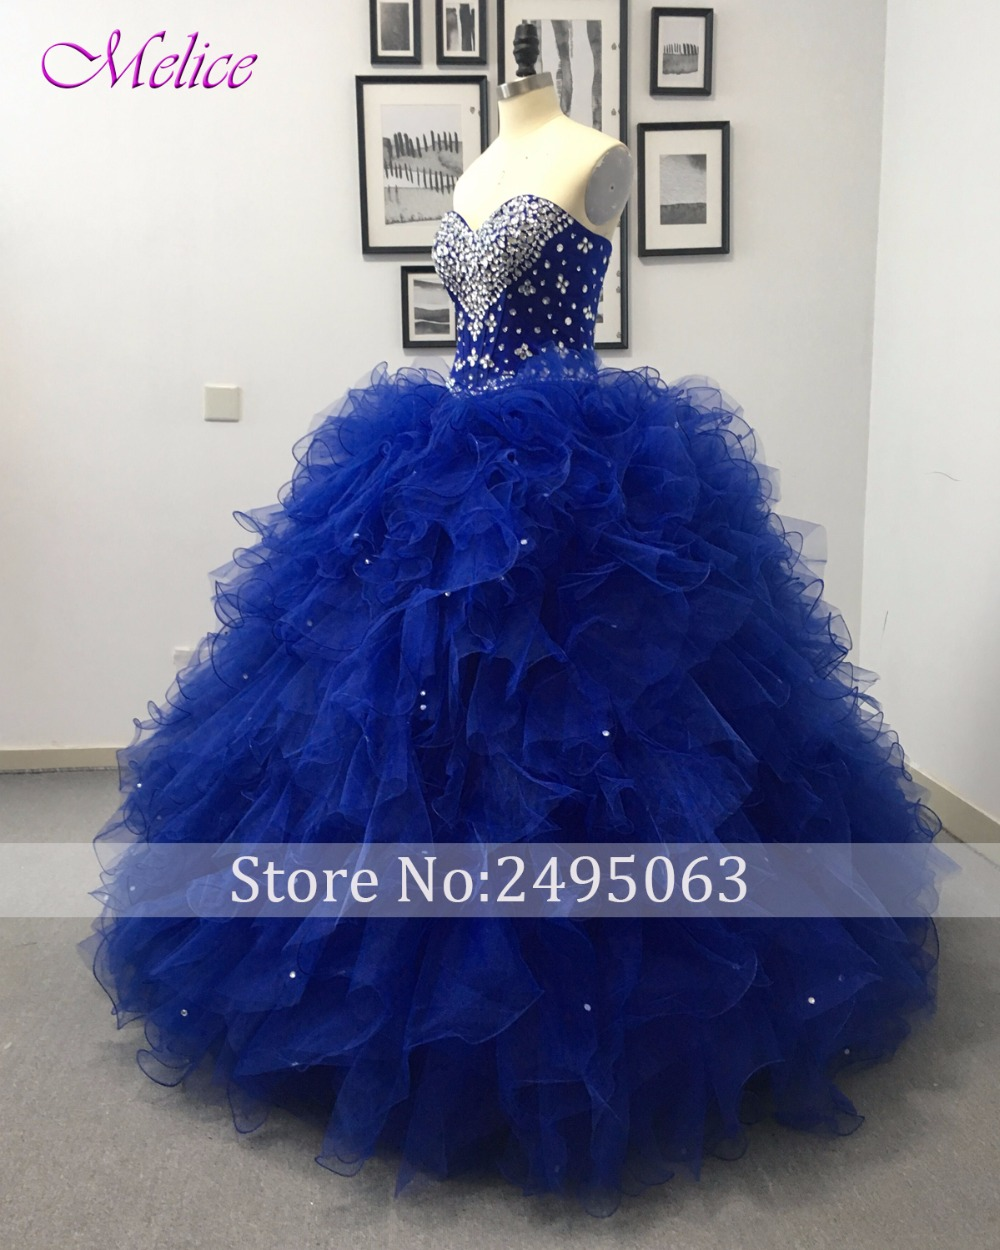 07c7001a849 Fmogl Charming Strapless Royal Blue Princess Quinceanera Dresses 2019  Beaded Crystal Vestido Lace Up Debutante Dress For 15 anos-in Quinceanera  Dresses from ...